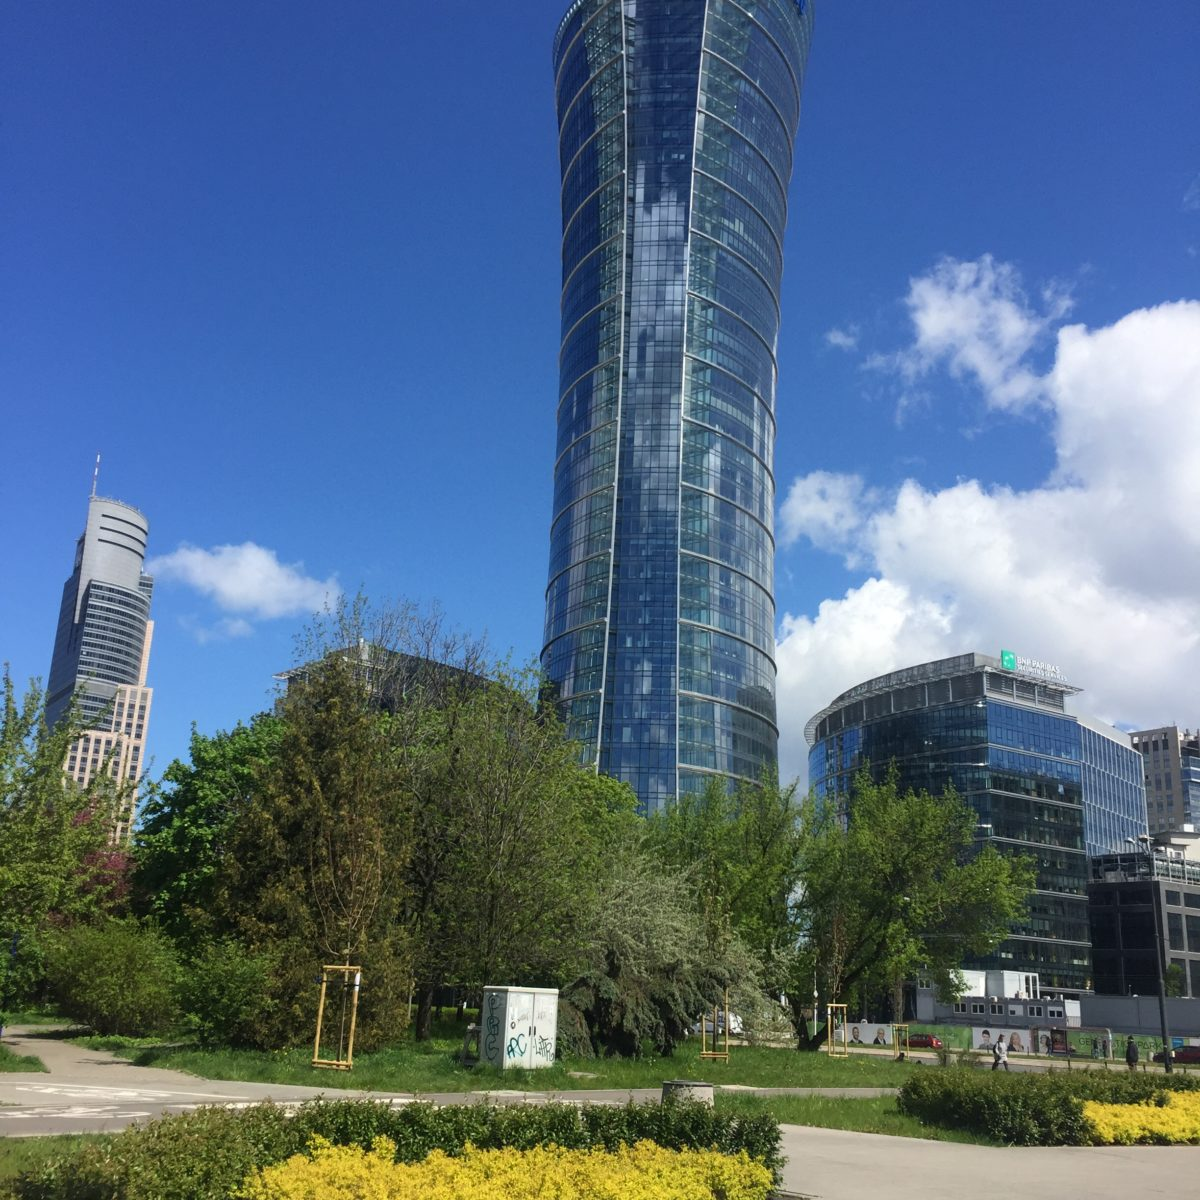 City of Warsaw, capital of Poland. A place of visit for many foreigners for both business and tourist purposes